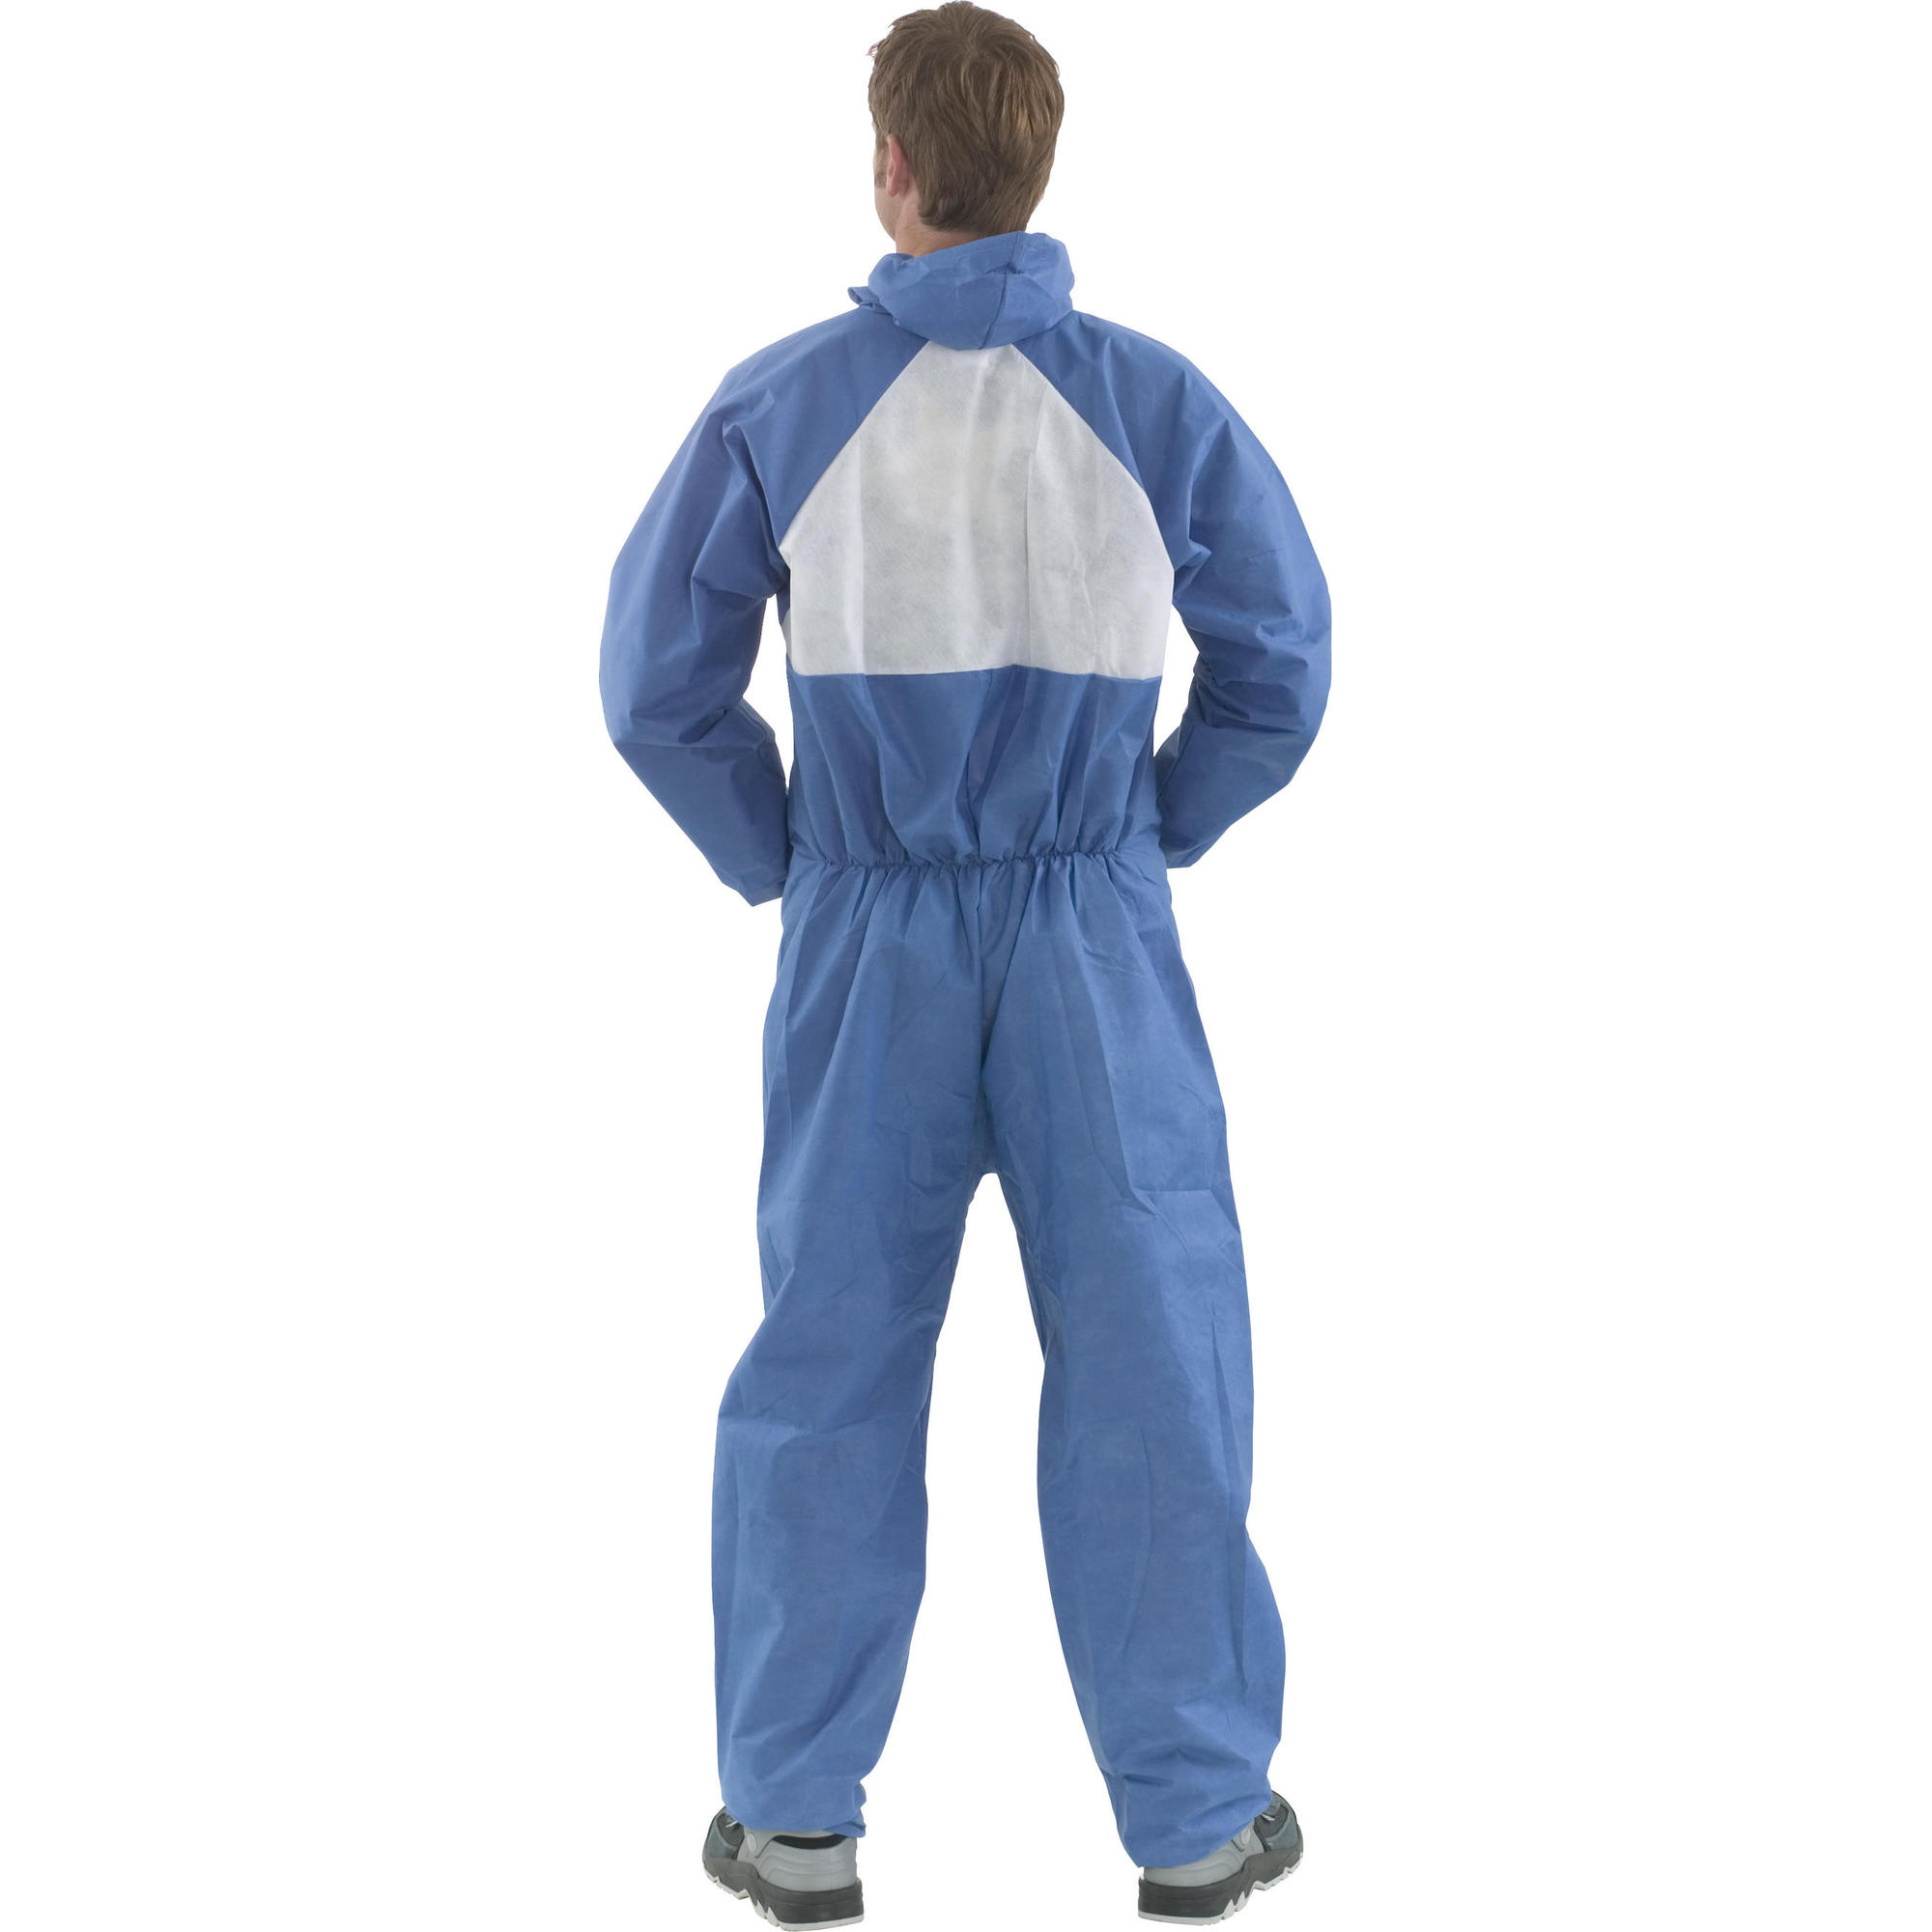 3M 4530 Fire Resistant Coveralls L Blue/White Ref 4530L Pack 20 *Up to 3 Day Leadtime*